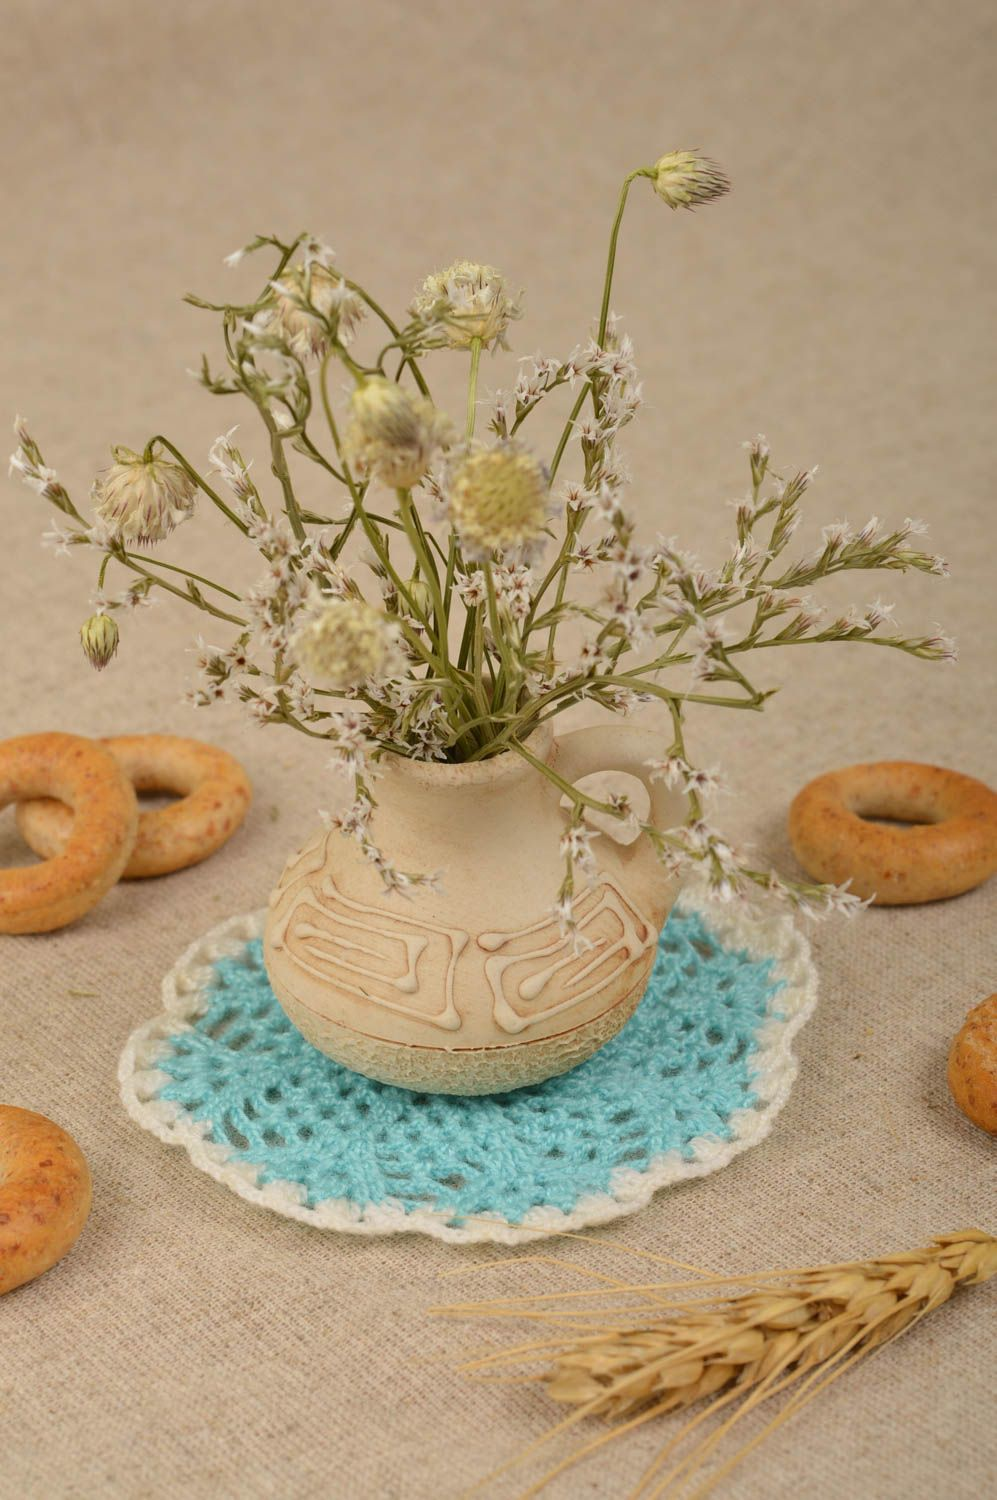 kitchen textiles Handmade openwork napkin crocheted table napkin home decor decorative use only - MADEheart.com